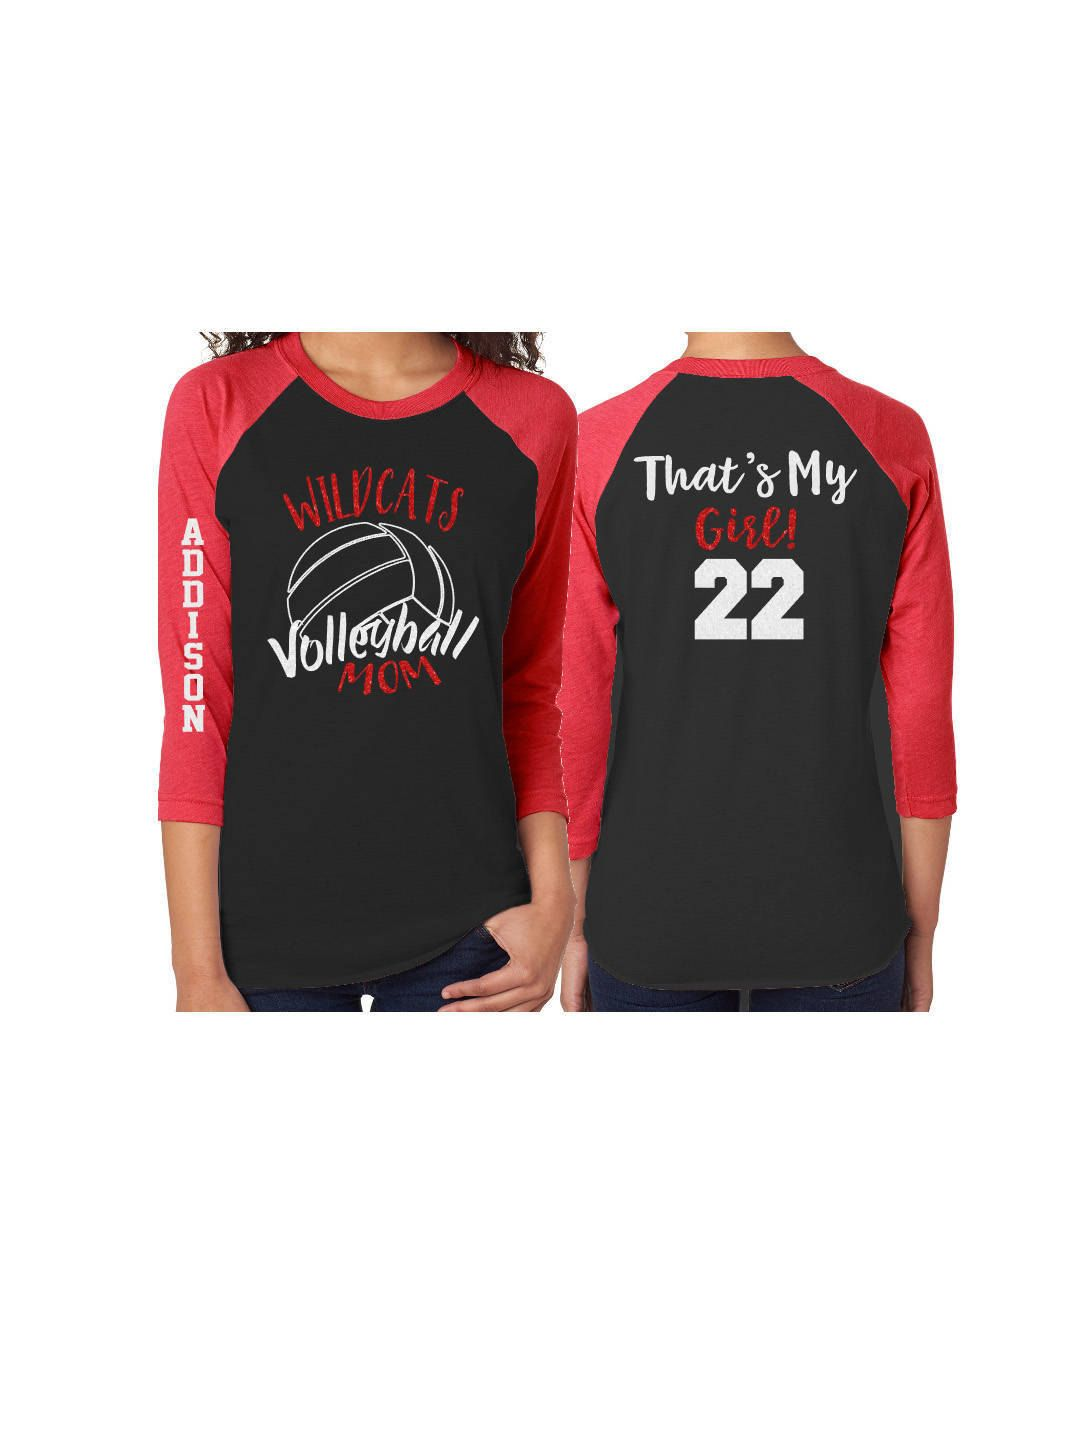 Volleyball Mom Shirt Ladies Volleyball Shirt Cute Volleyball Shirt For Women Volleyball Season Shirt Volleyball Tee Volleyball Girl With Images Volleyball Mom Shirts Cute Volleyball Shirts Volleyball Mom